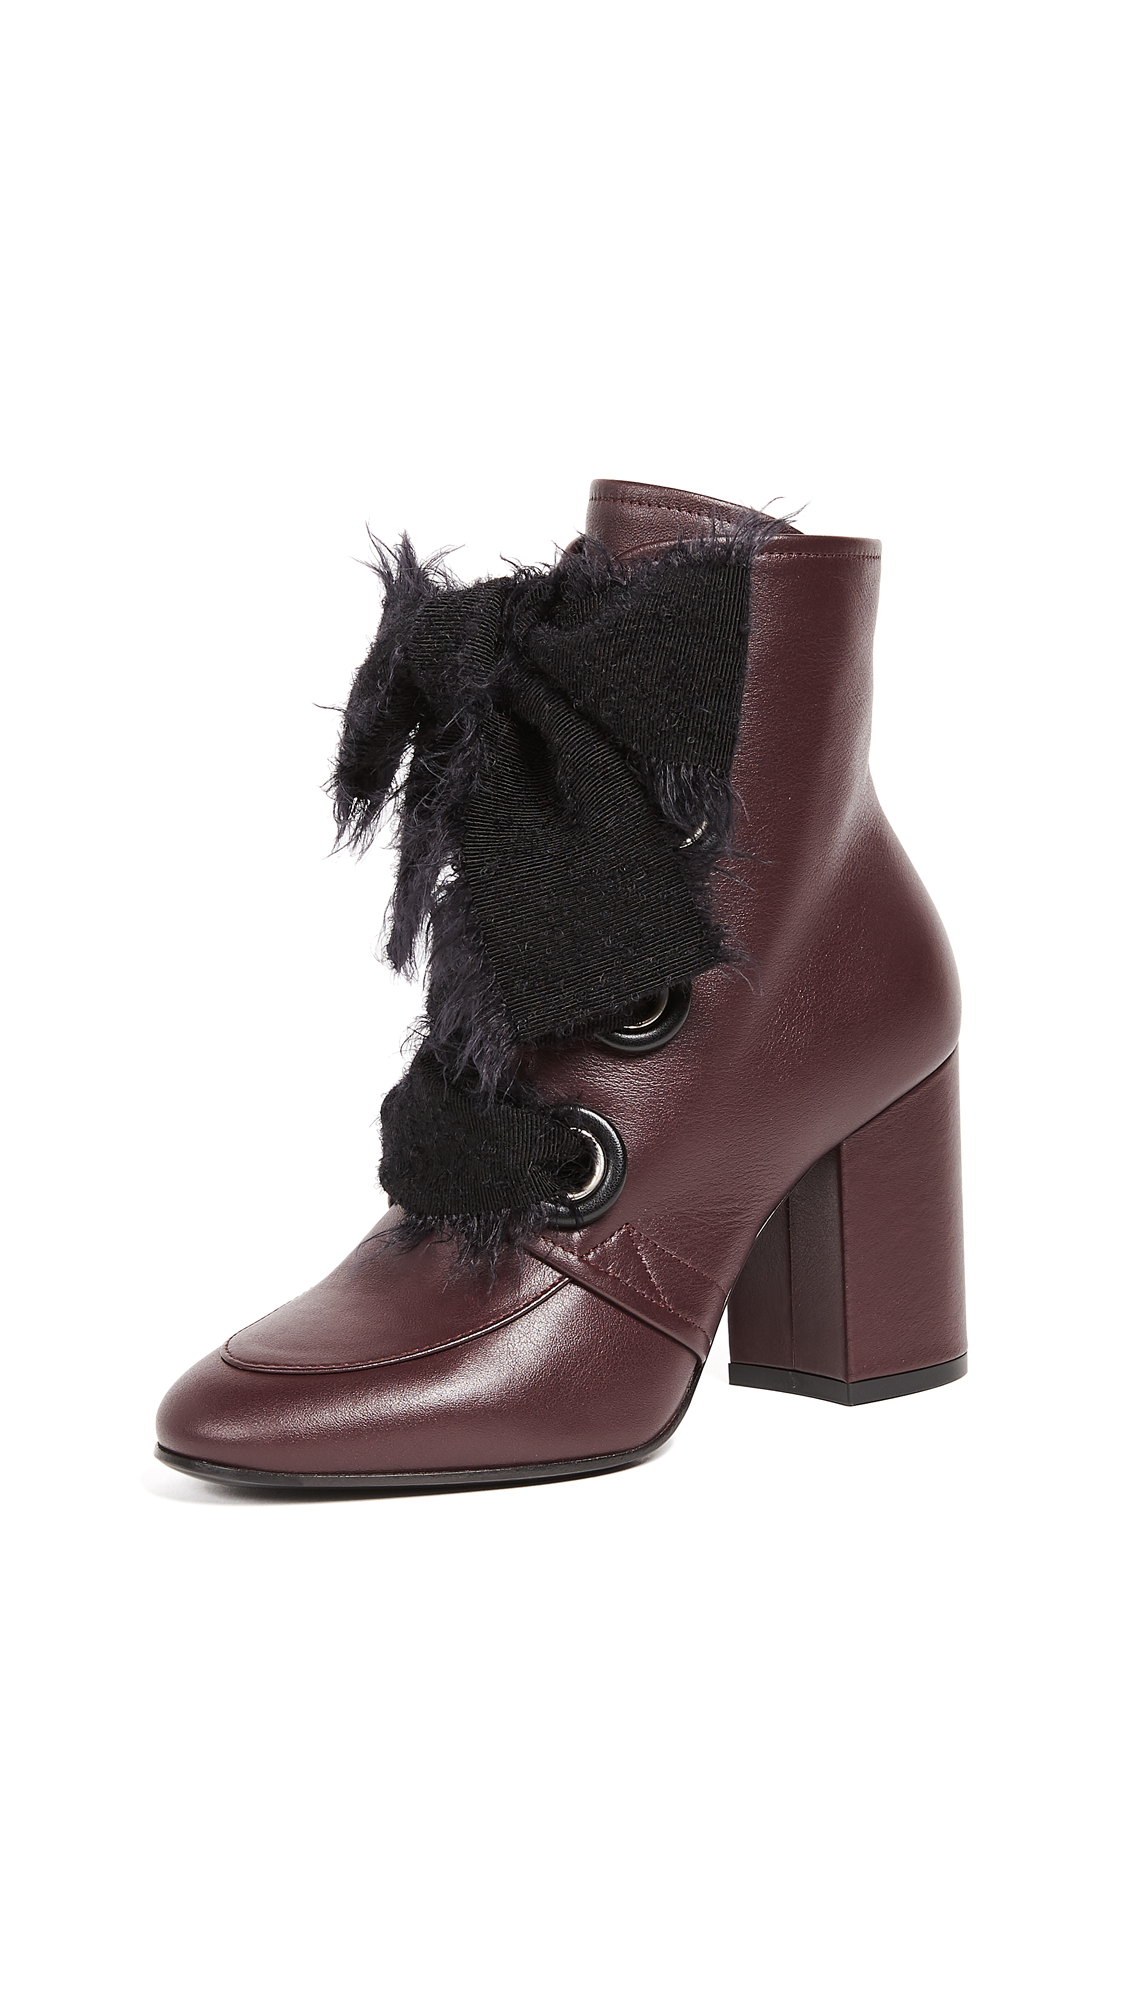 Greymer Lucy Lace Up Booties - Merlot